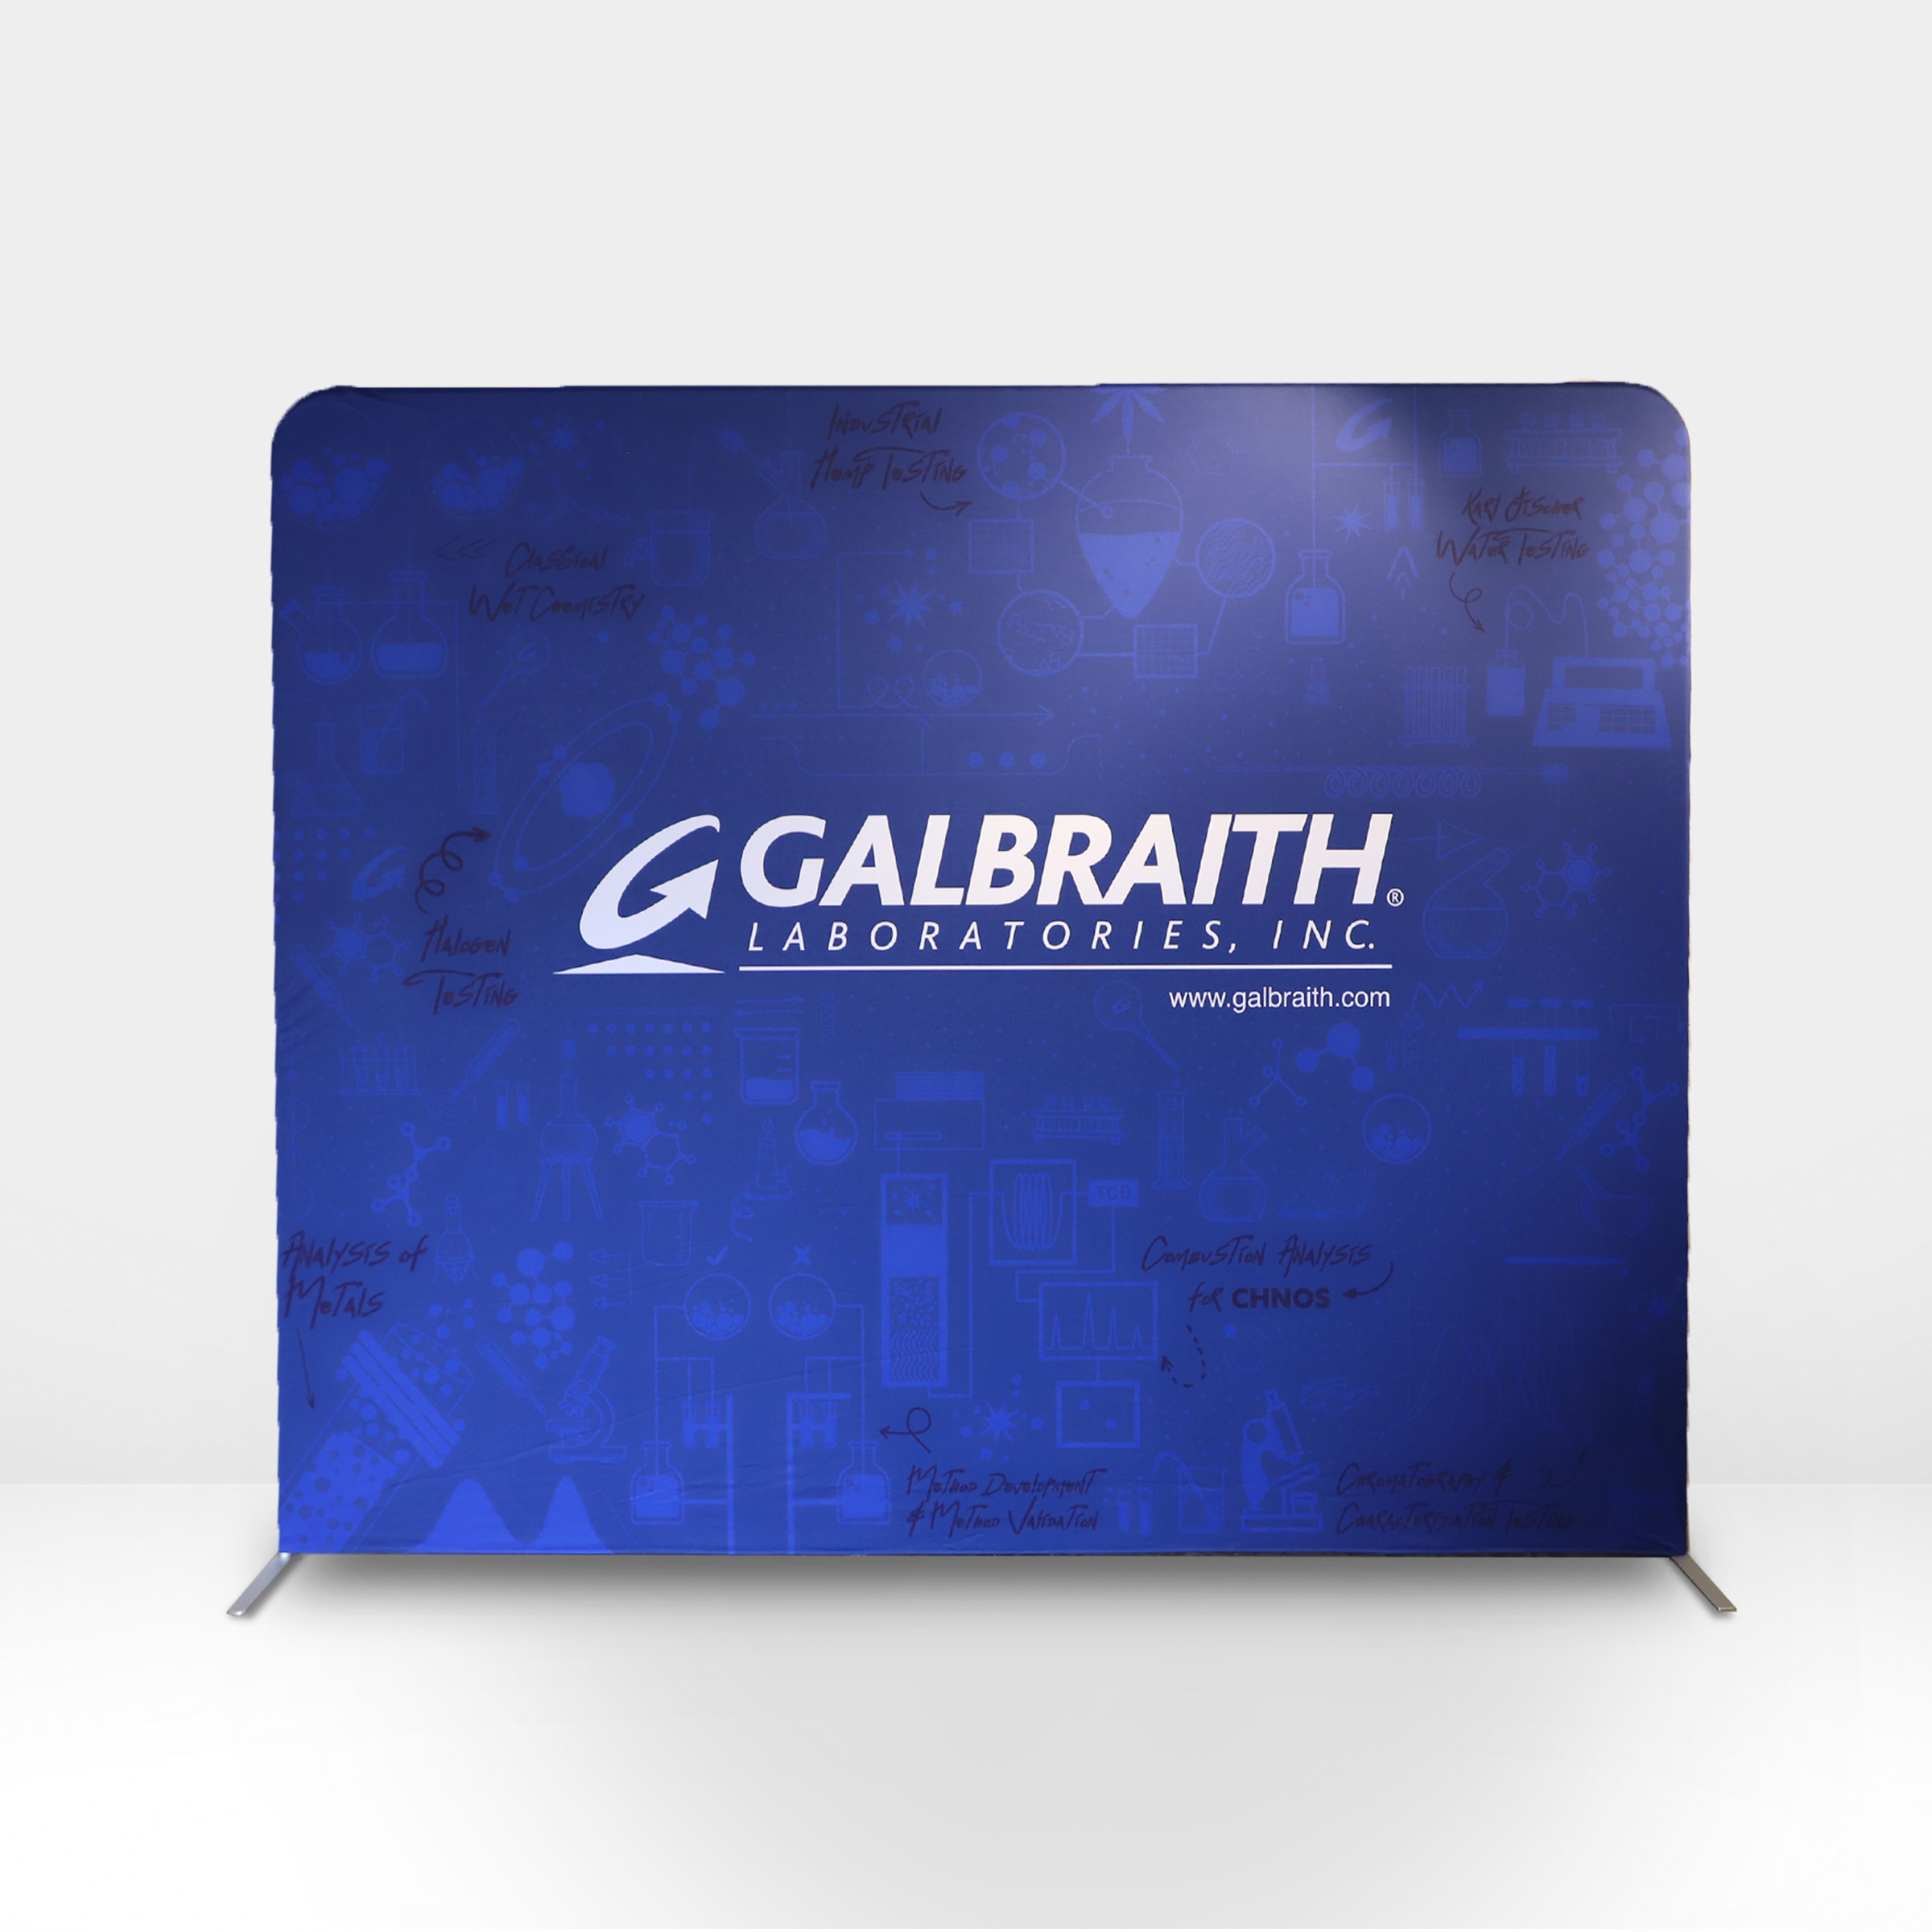 Galbraith Laboratories